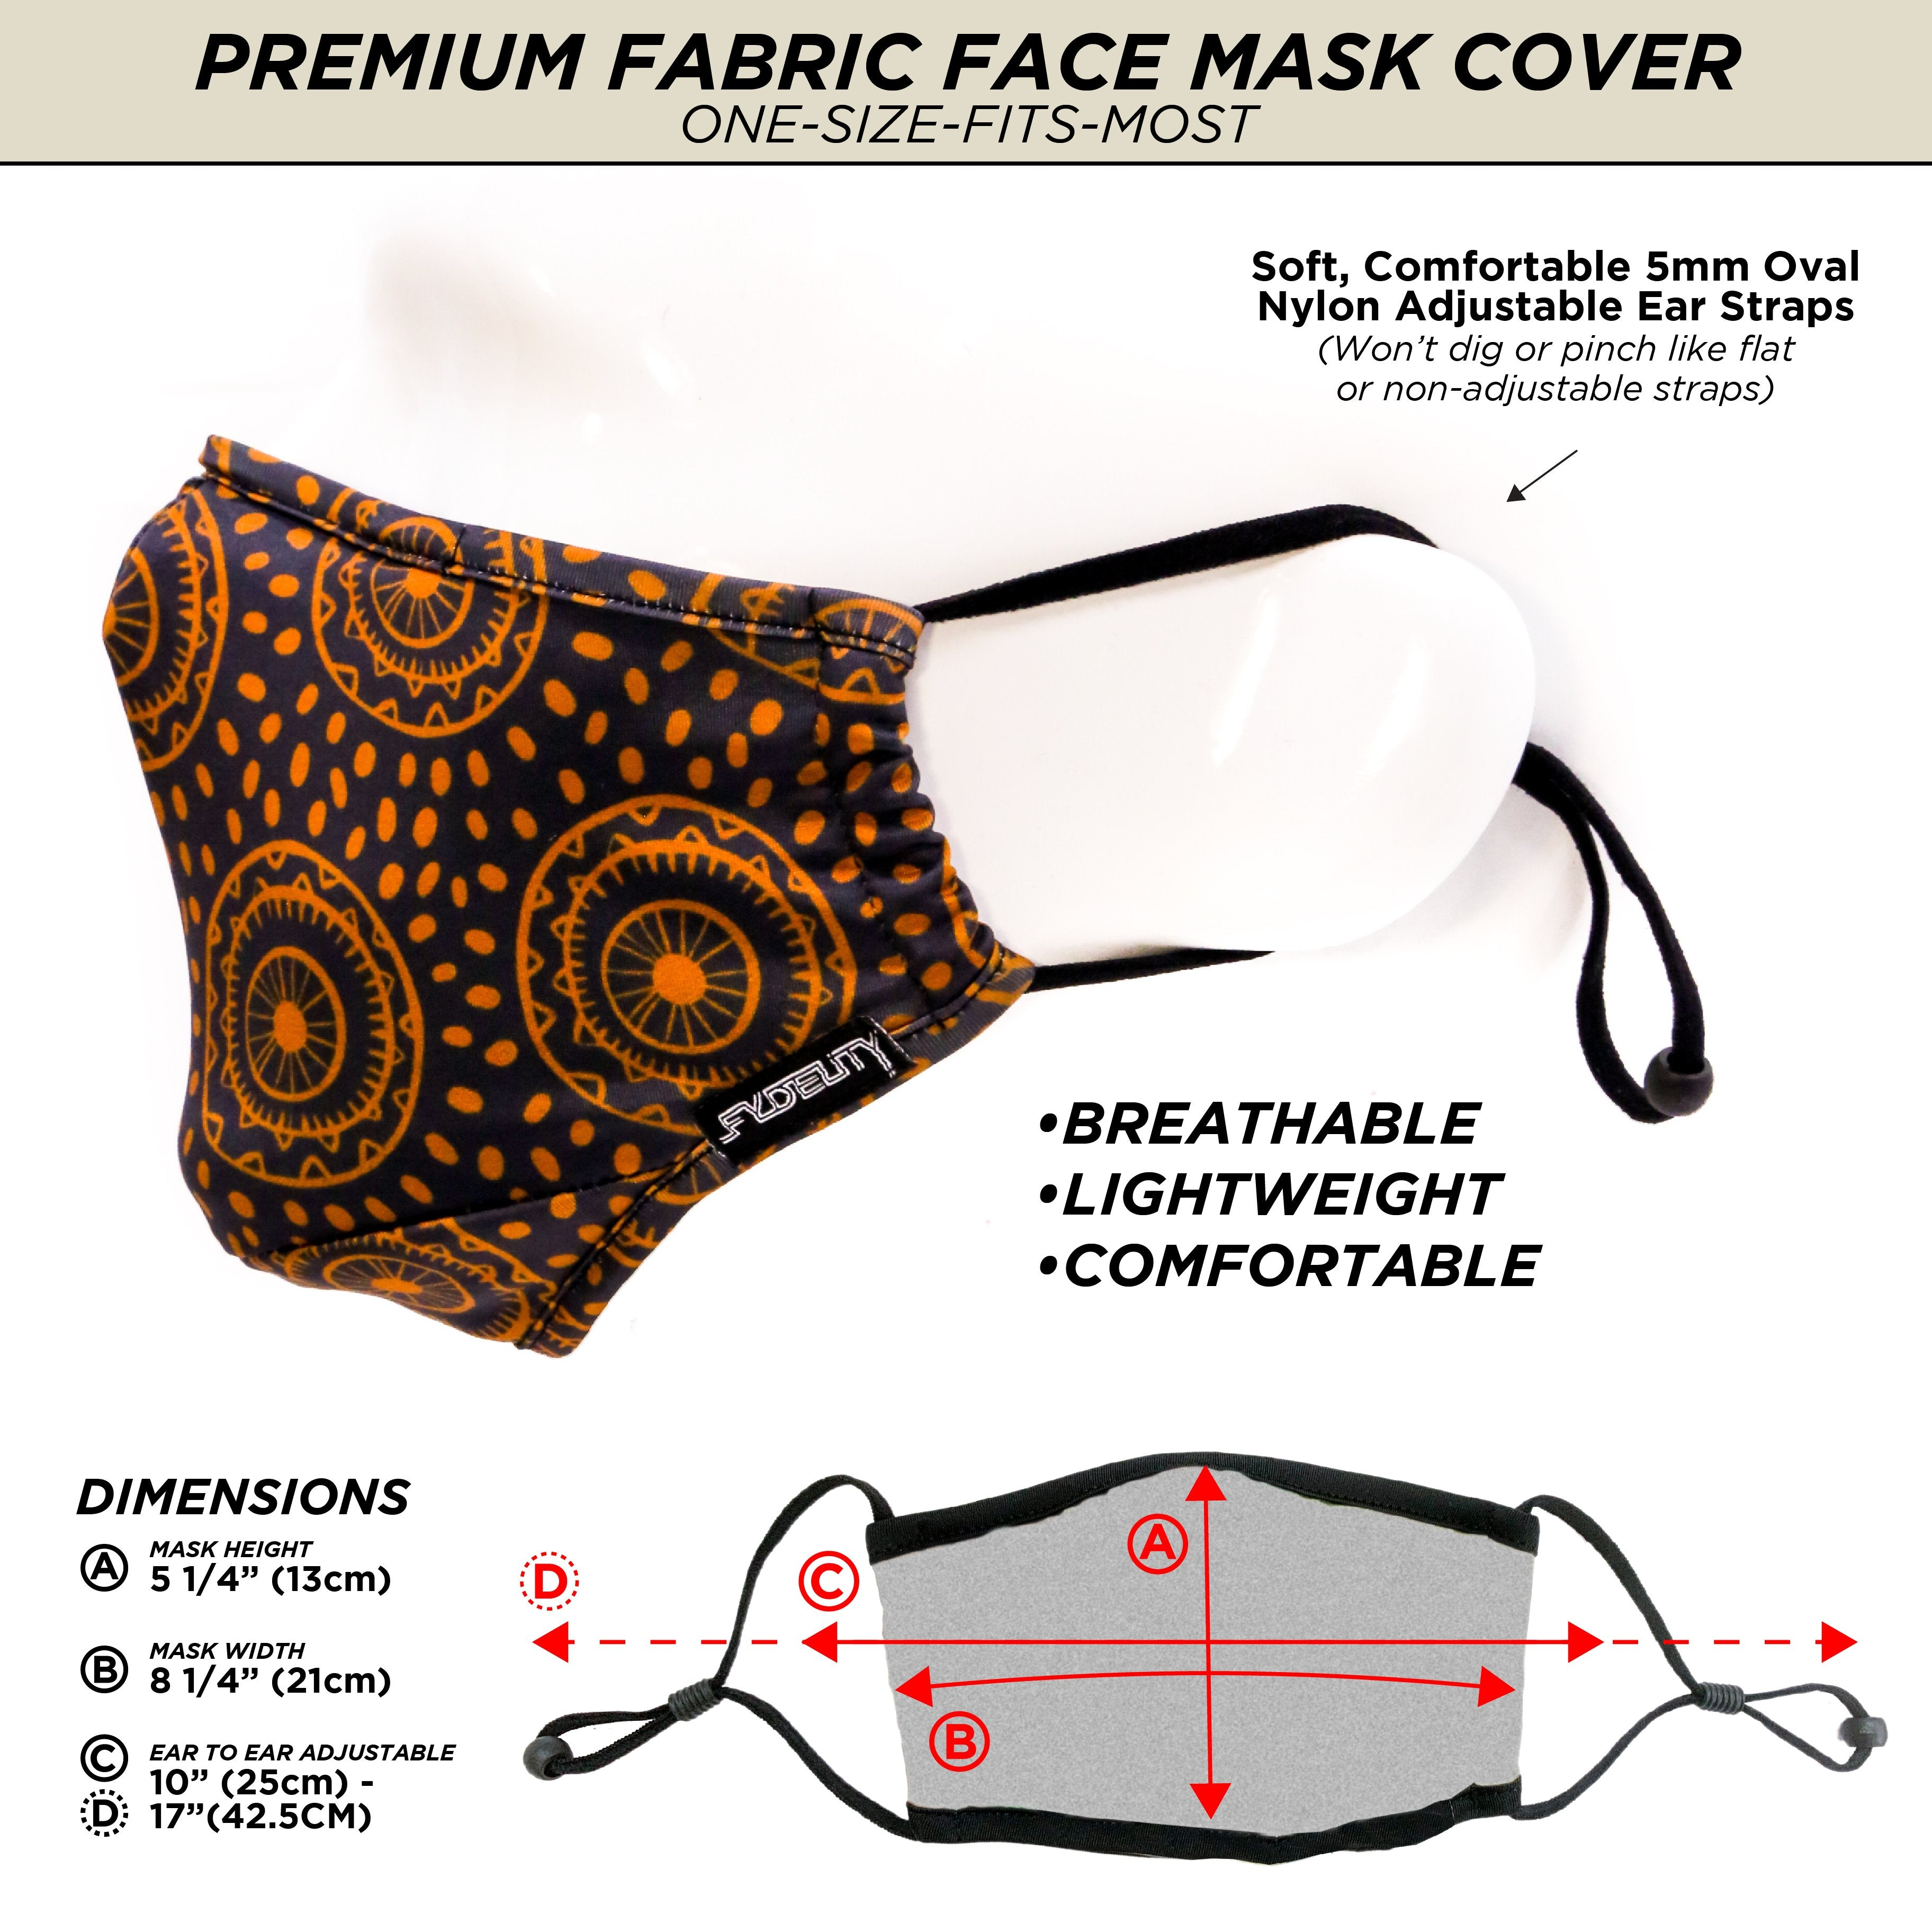 18195: FYDELITY- Premium Protective Fabric Face Cover- Wheels of Life